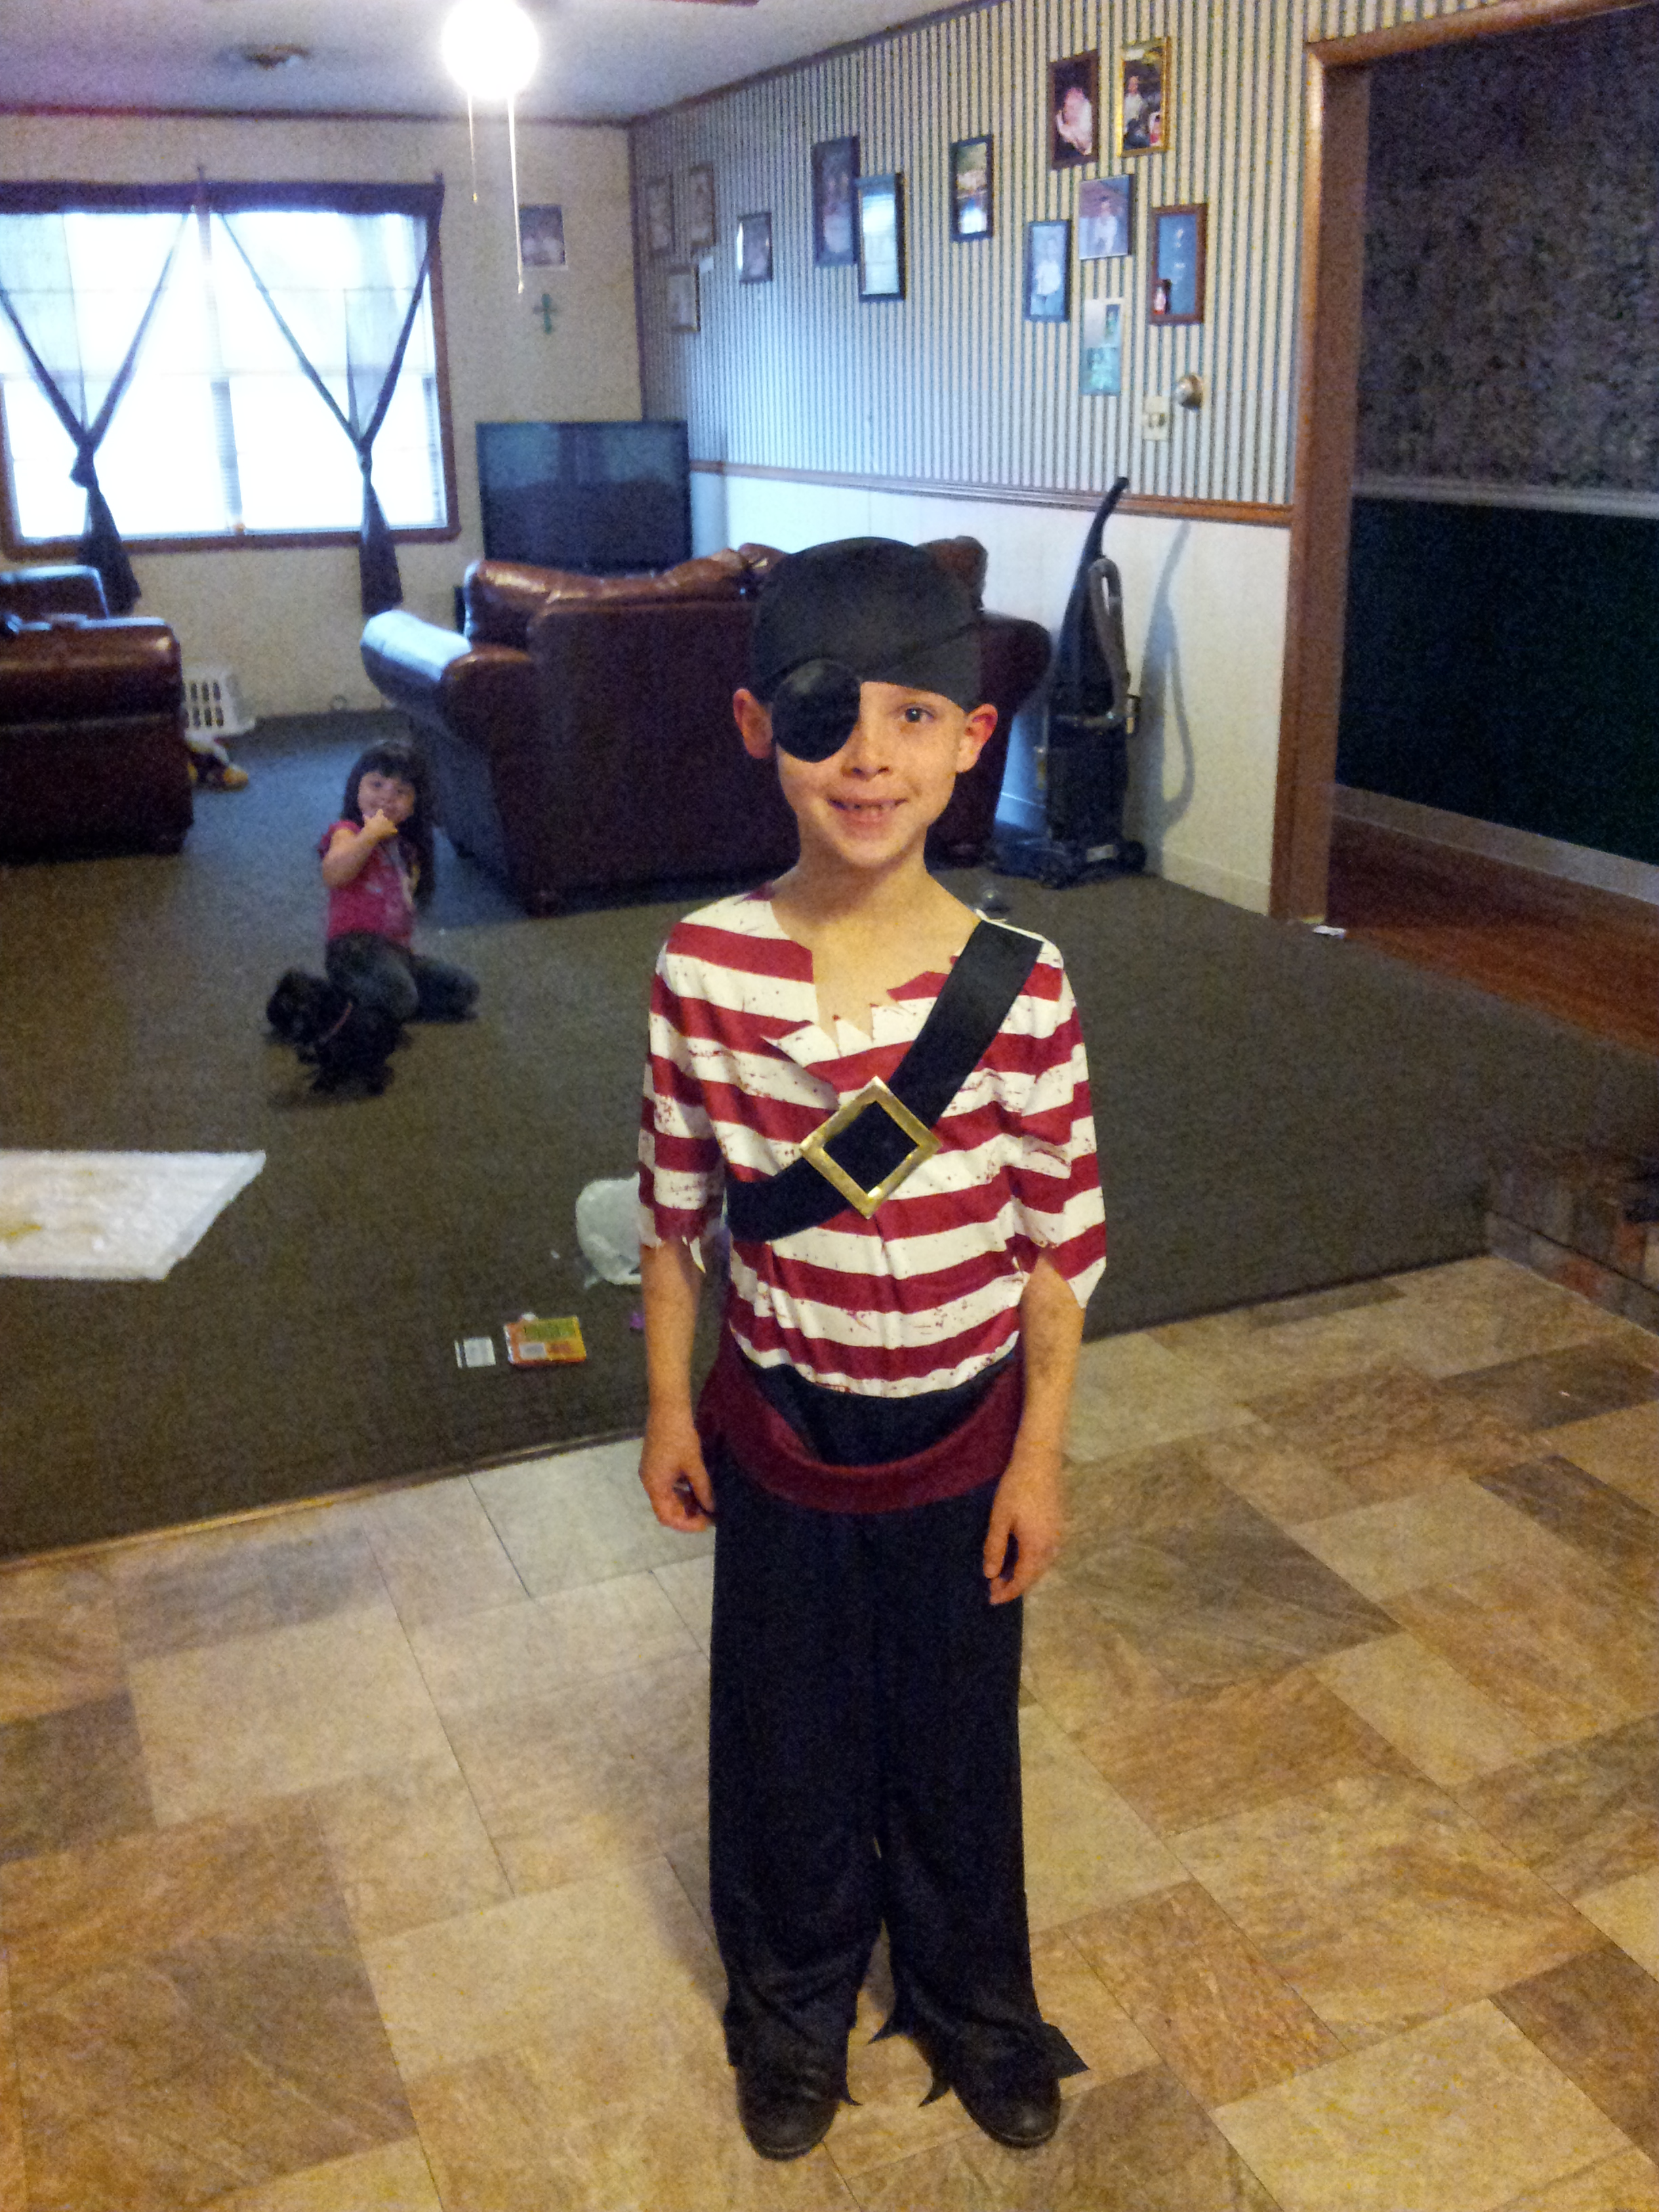 Antonio the Pirate